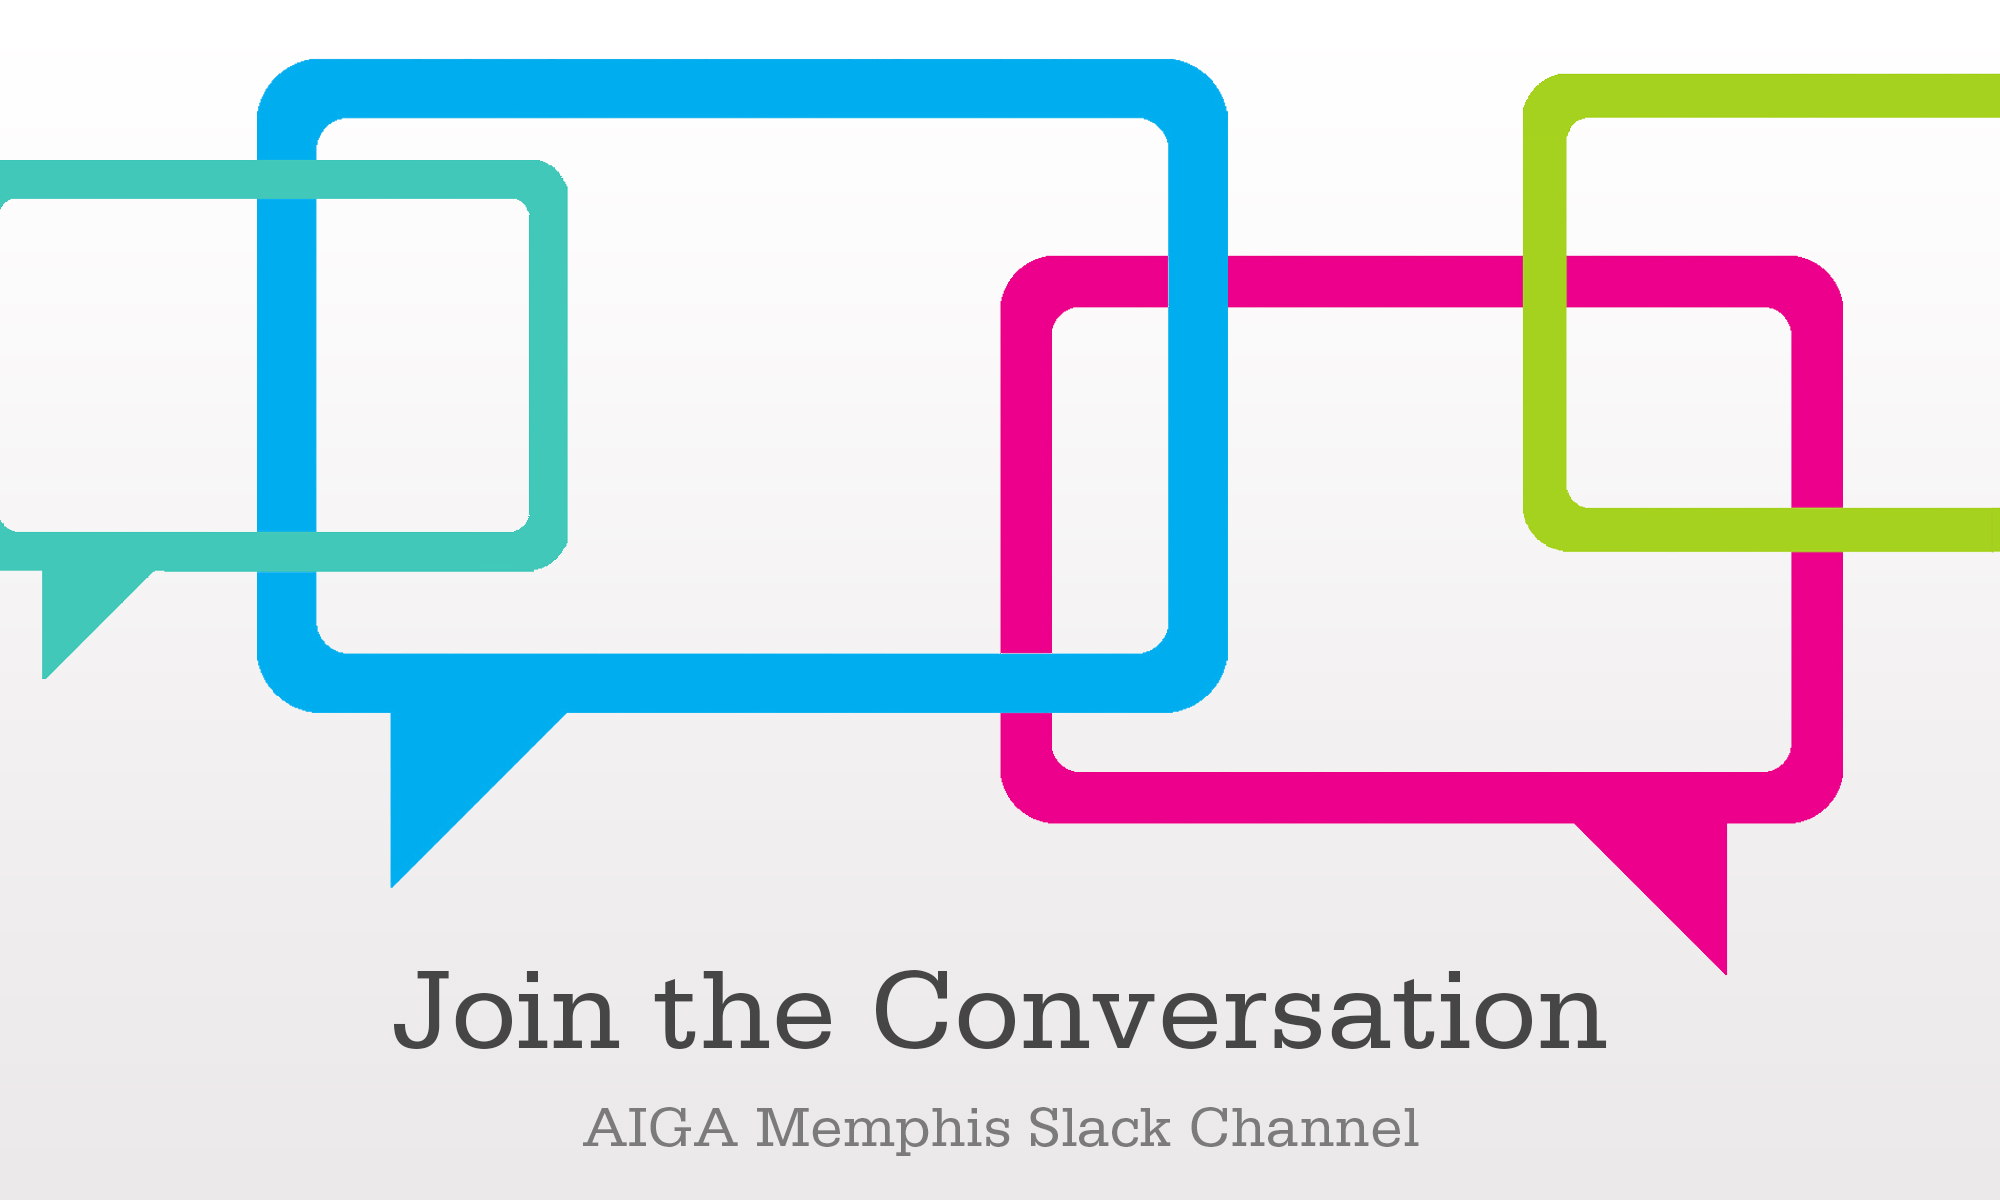 AIGA Slack Join the Conversation